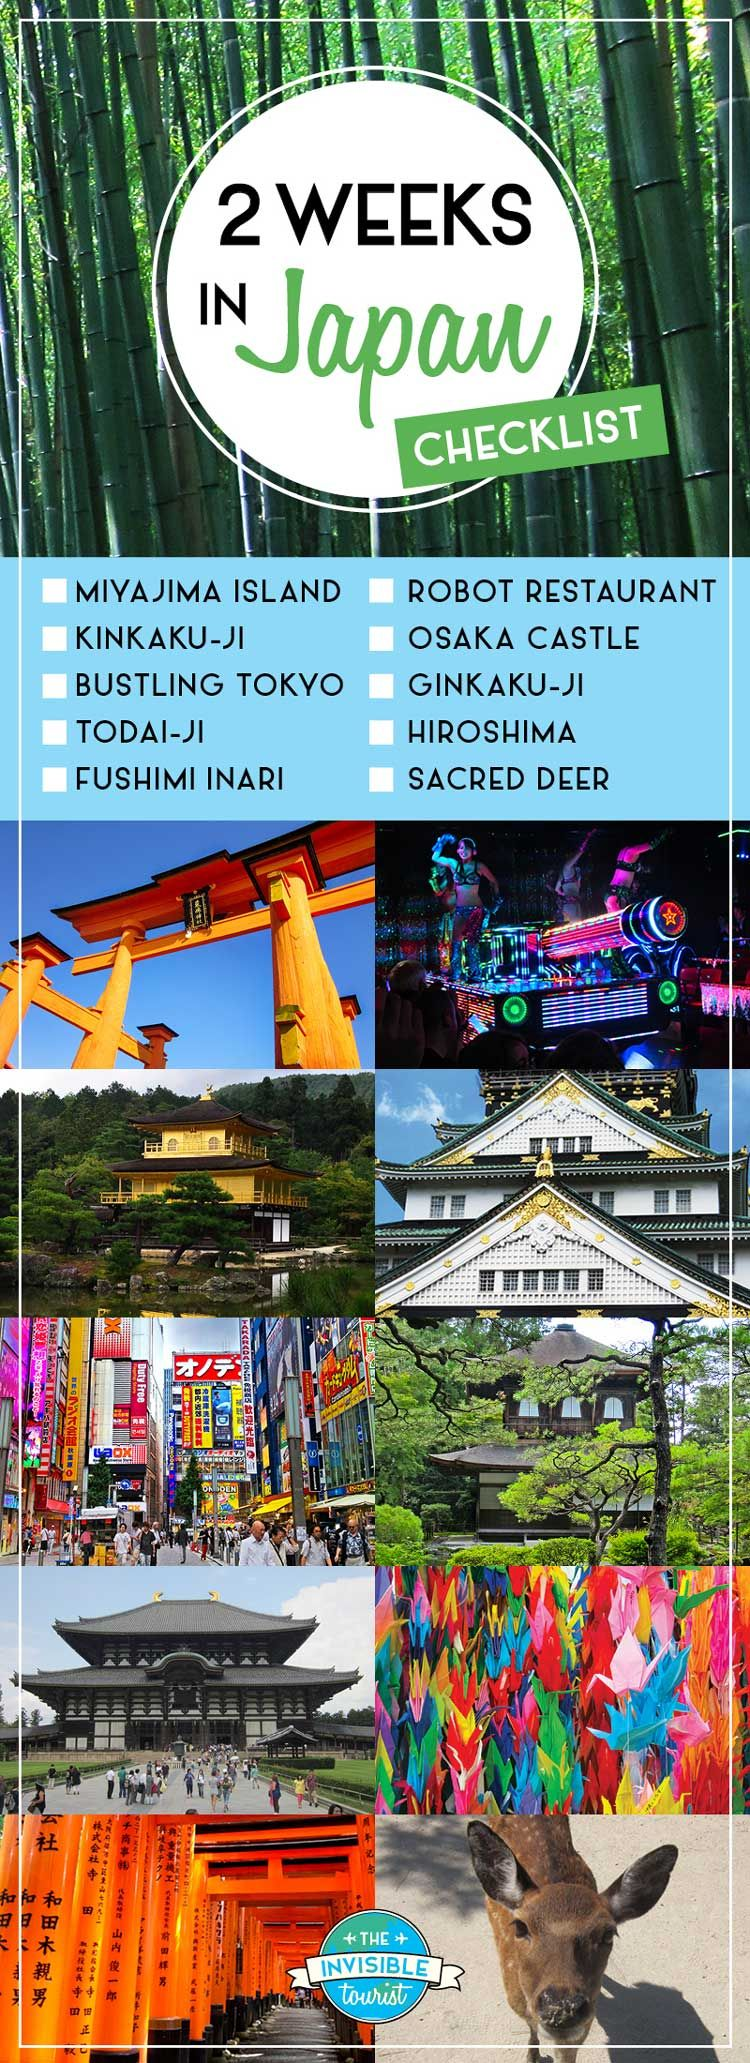 2 Weeks in Japan Holiday Ideas - First Time Checklist